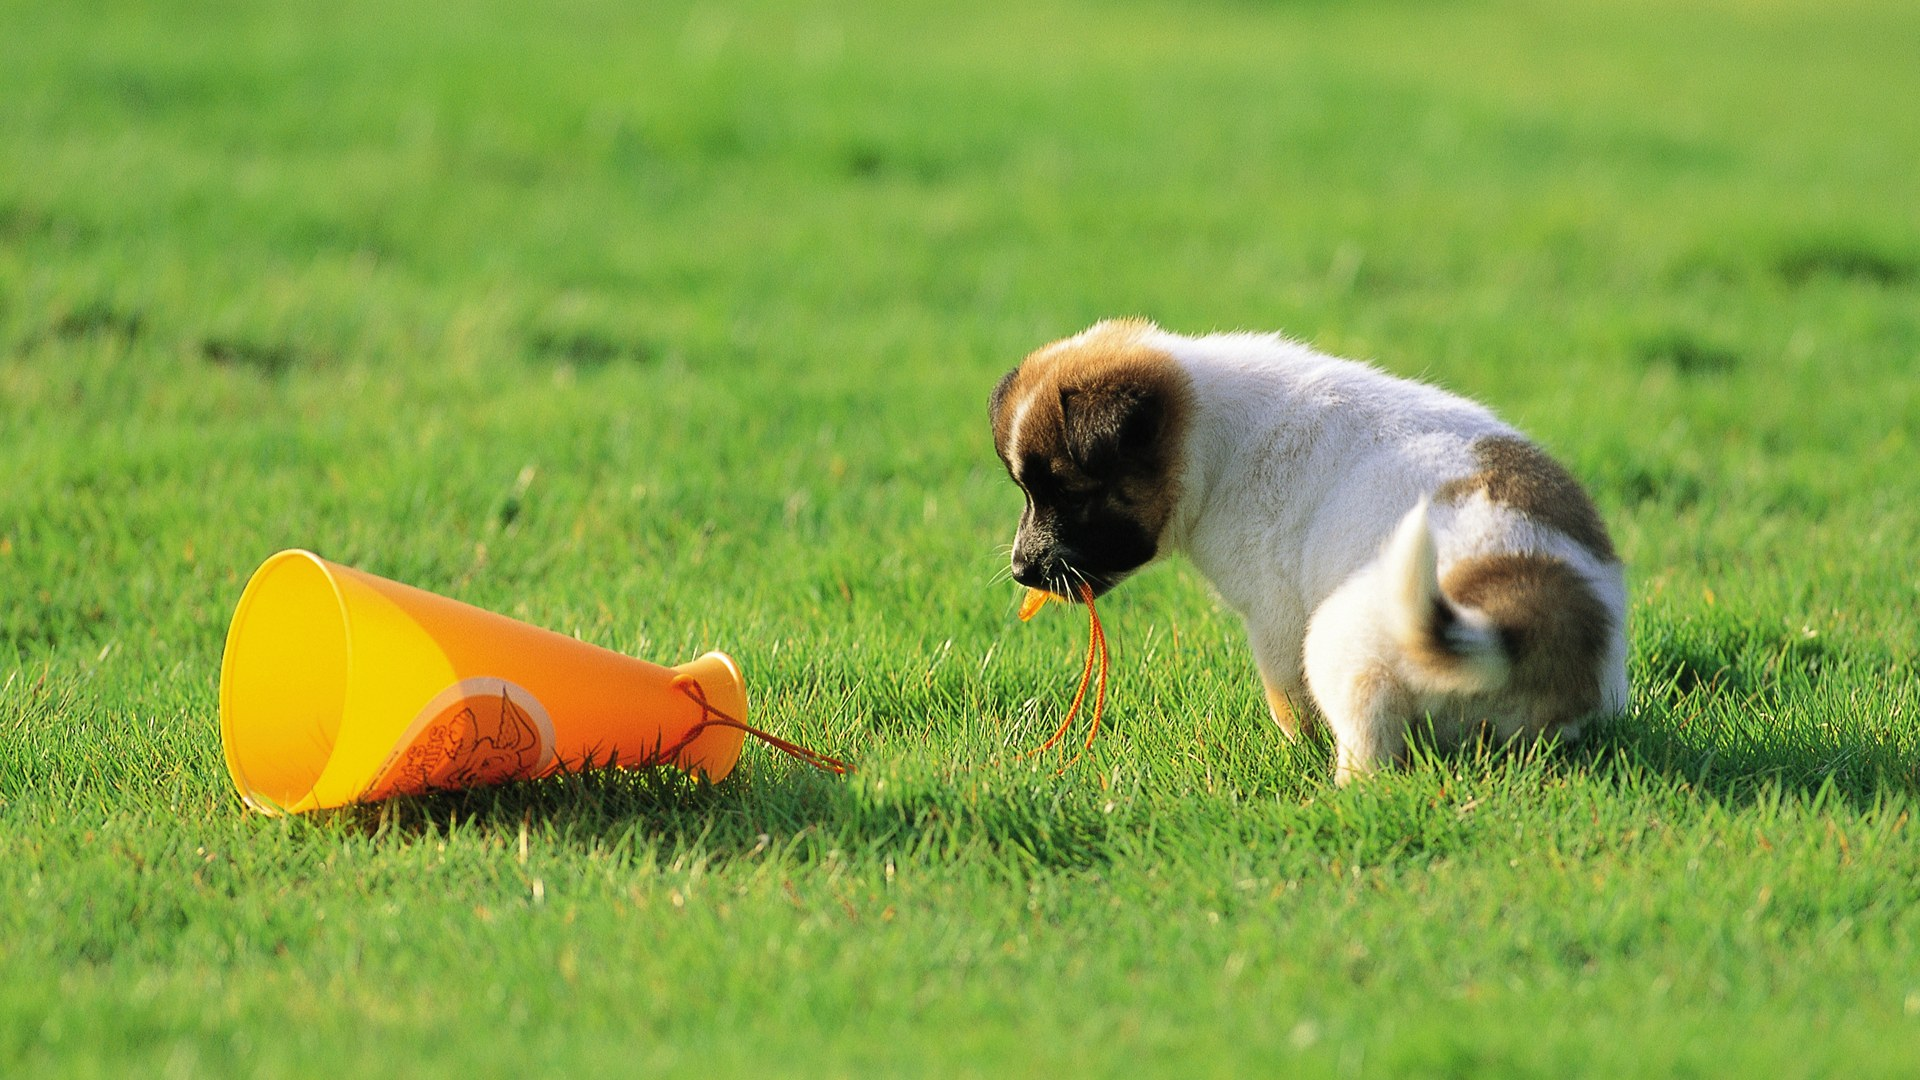 50 free hd dog wallpapers - The cutest wallpaper ...